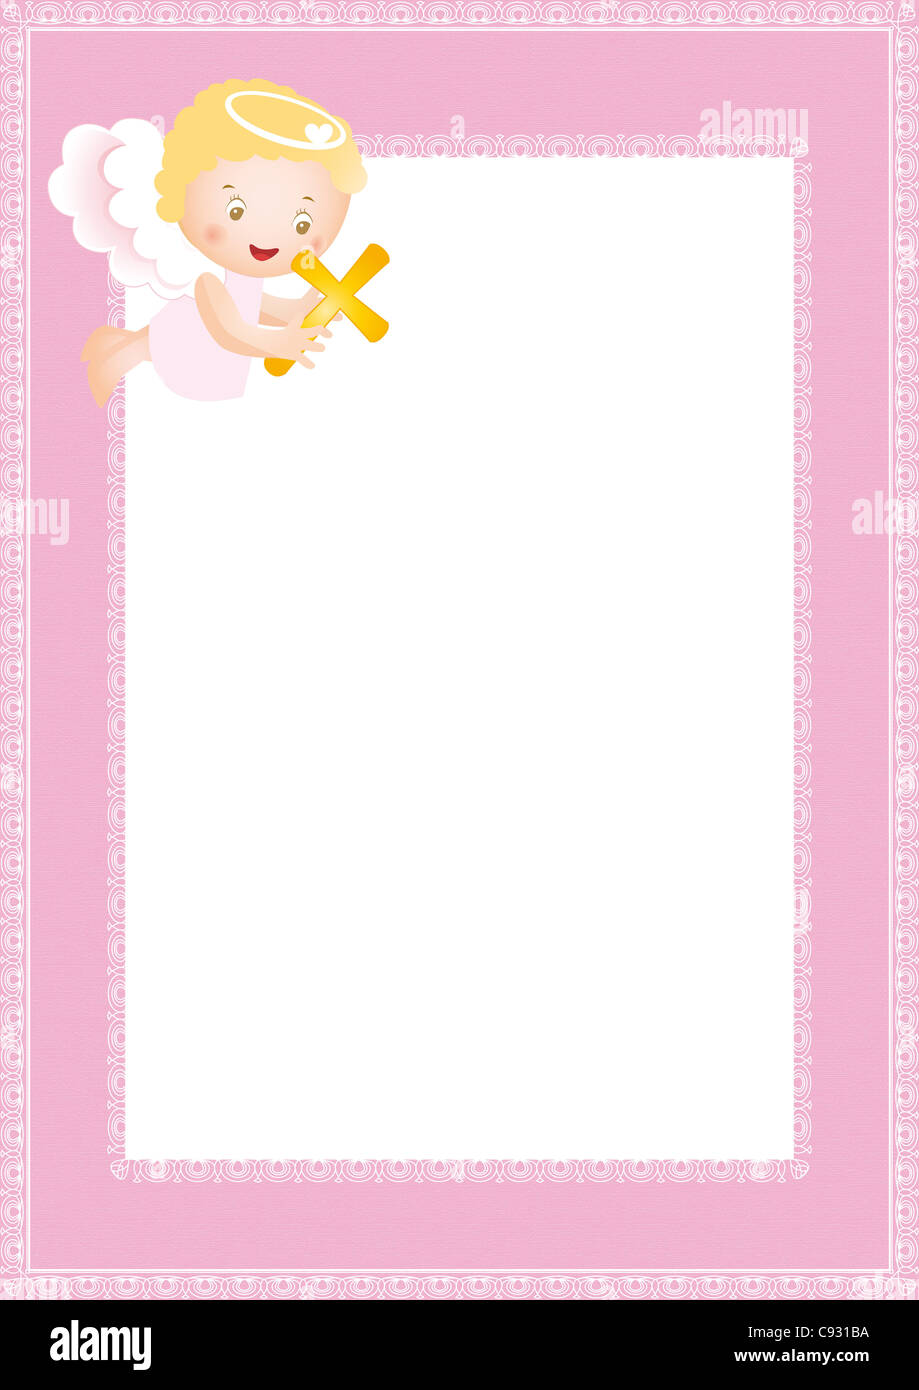 Baby baptism frame with small angel Stock Photo: 40019598 - Alamy